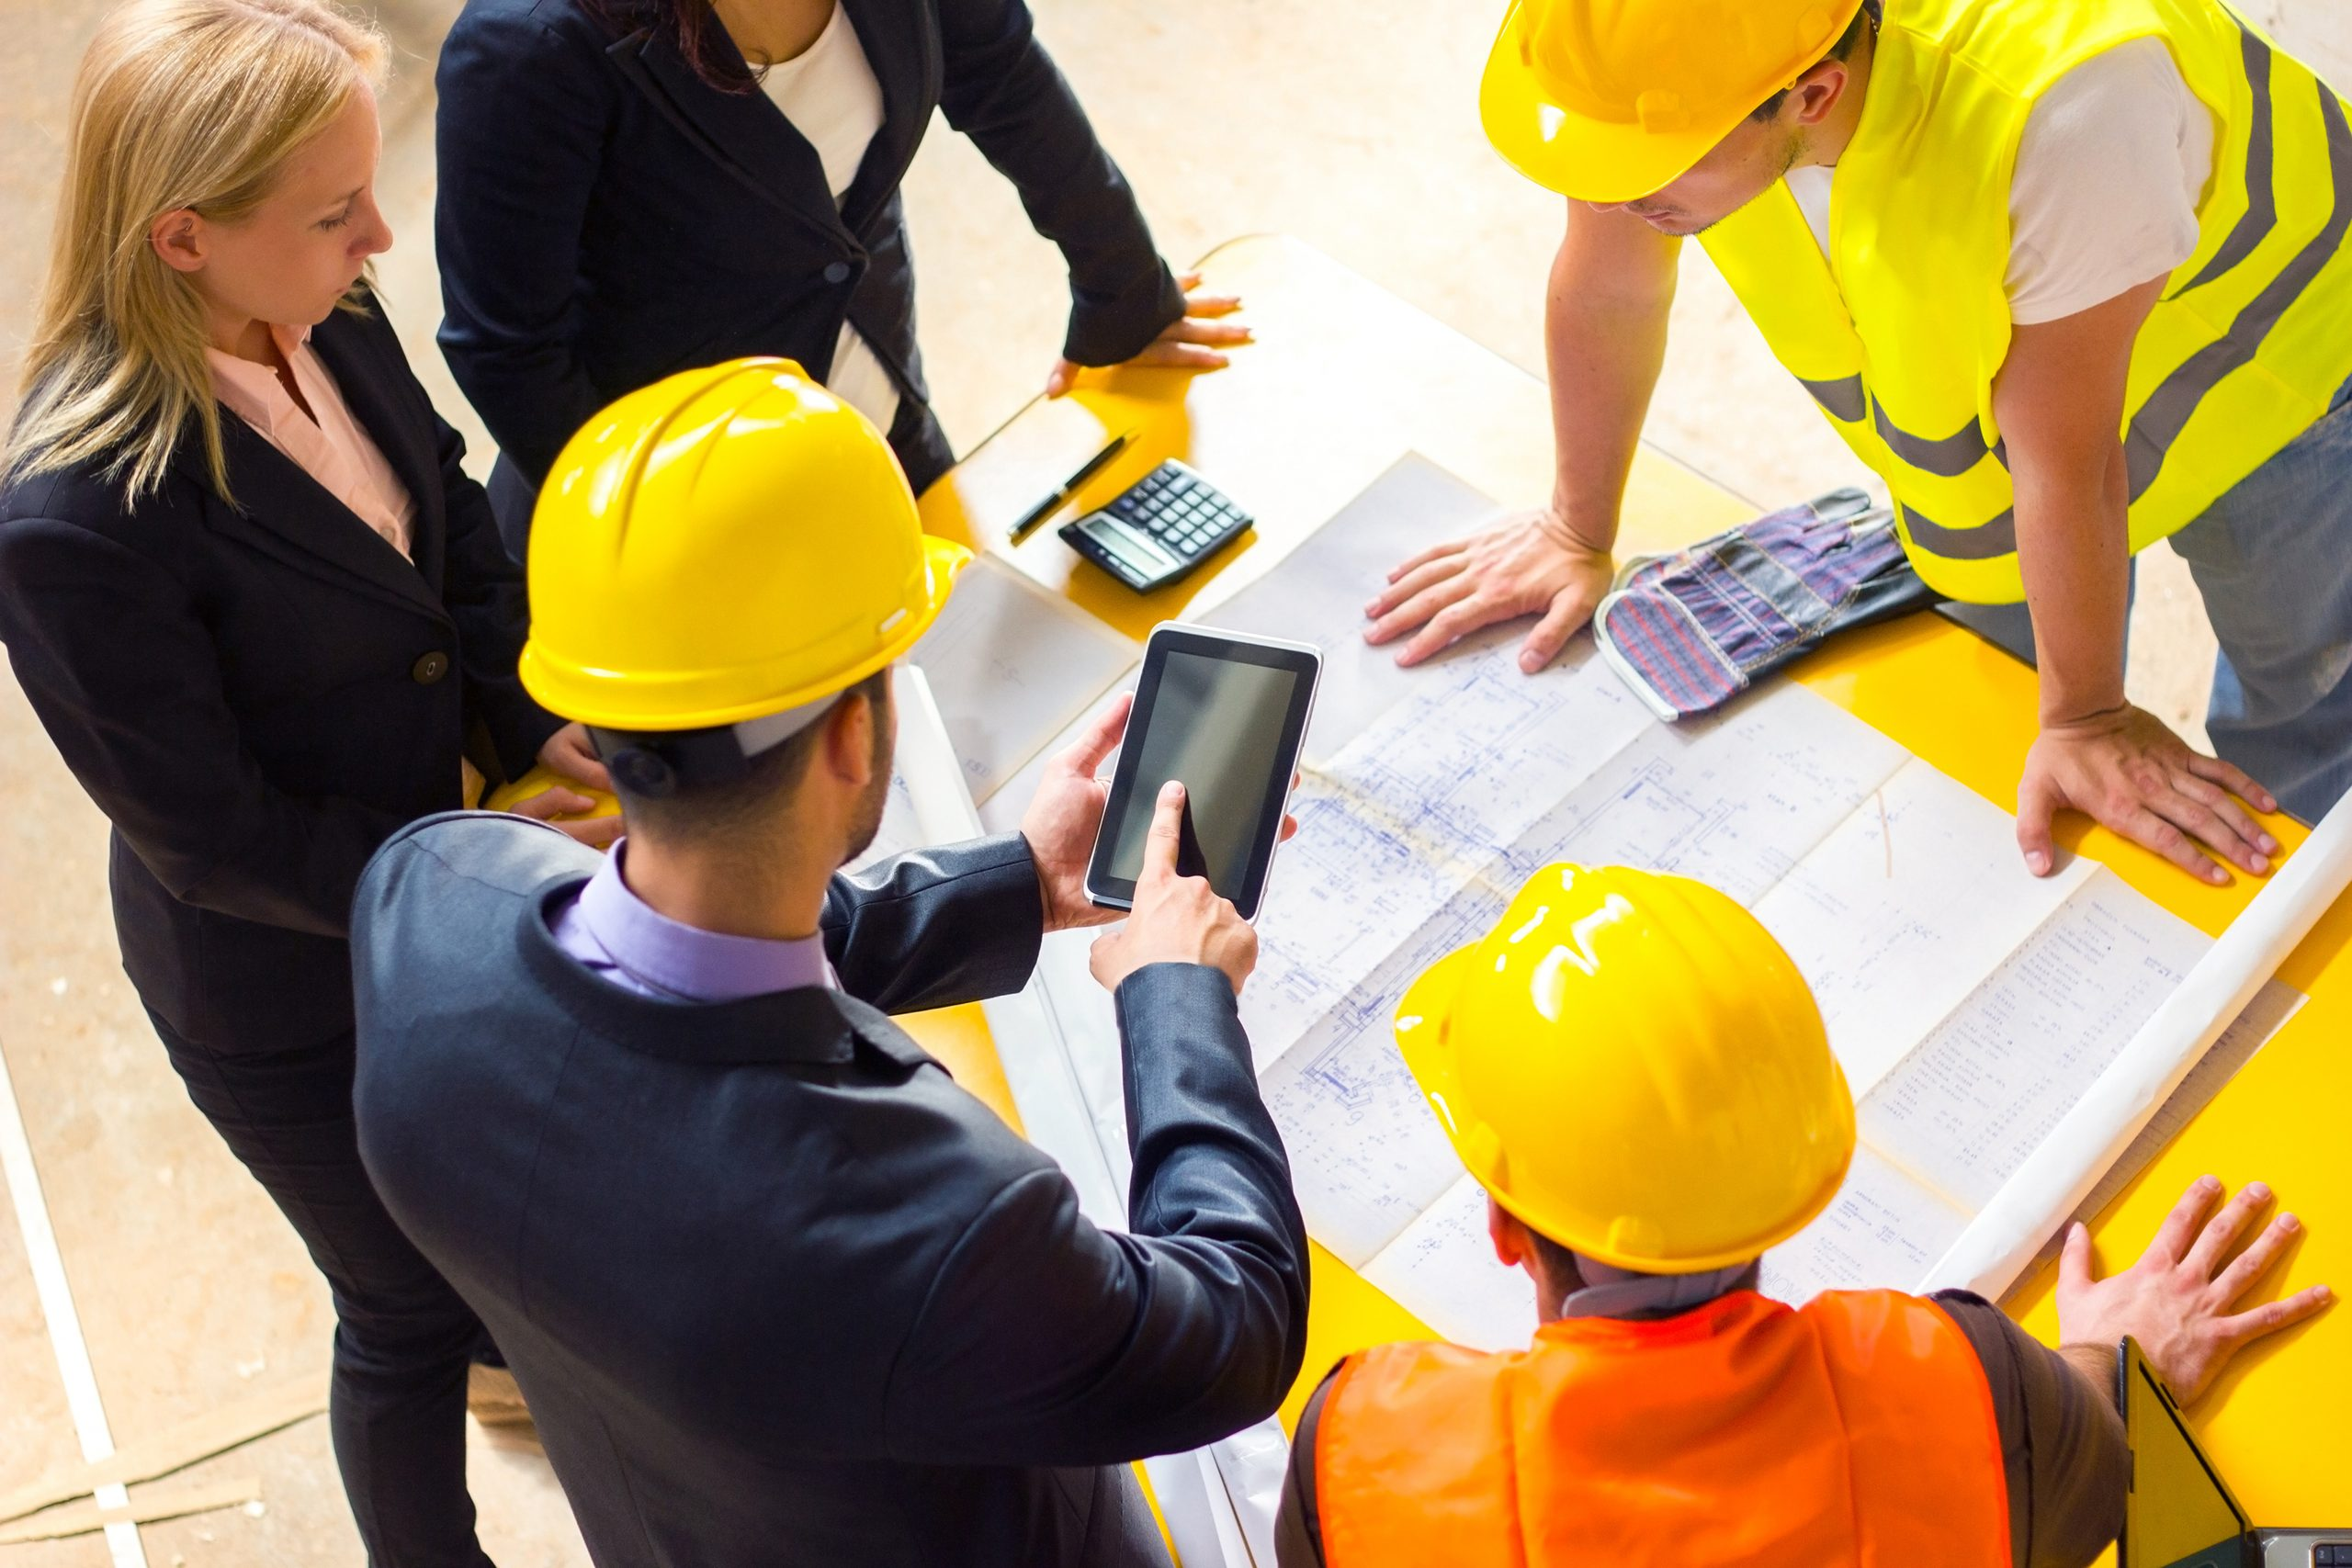 Construction workers leaning over architectural drawings with mobile device